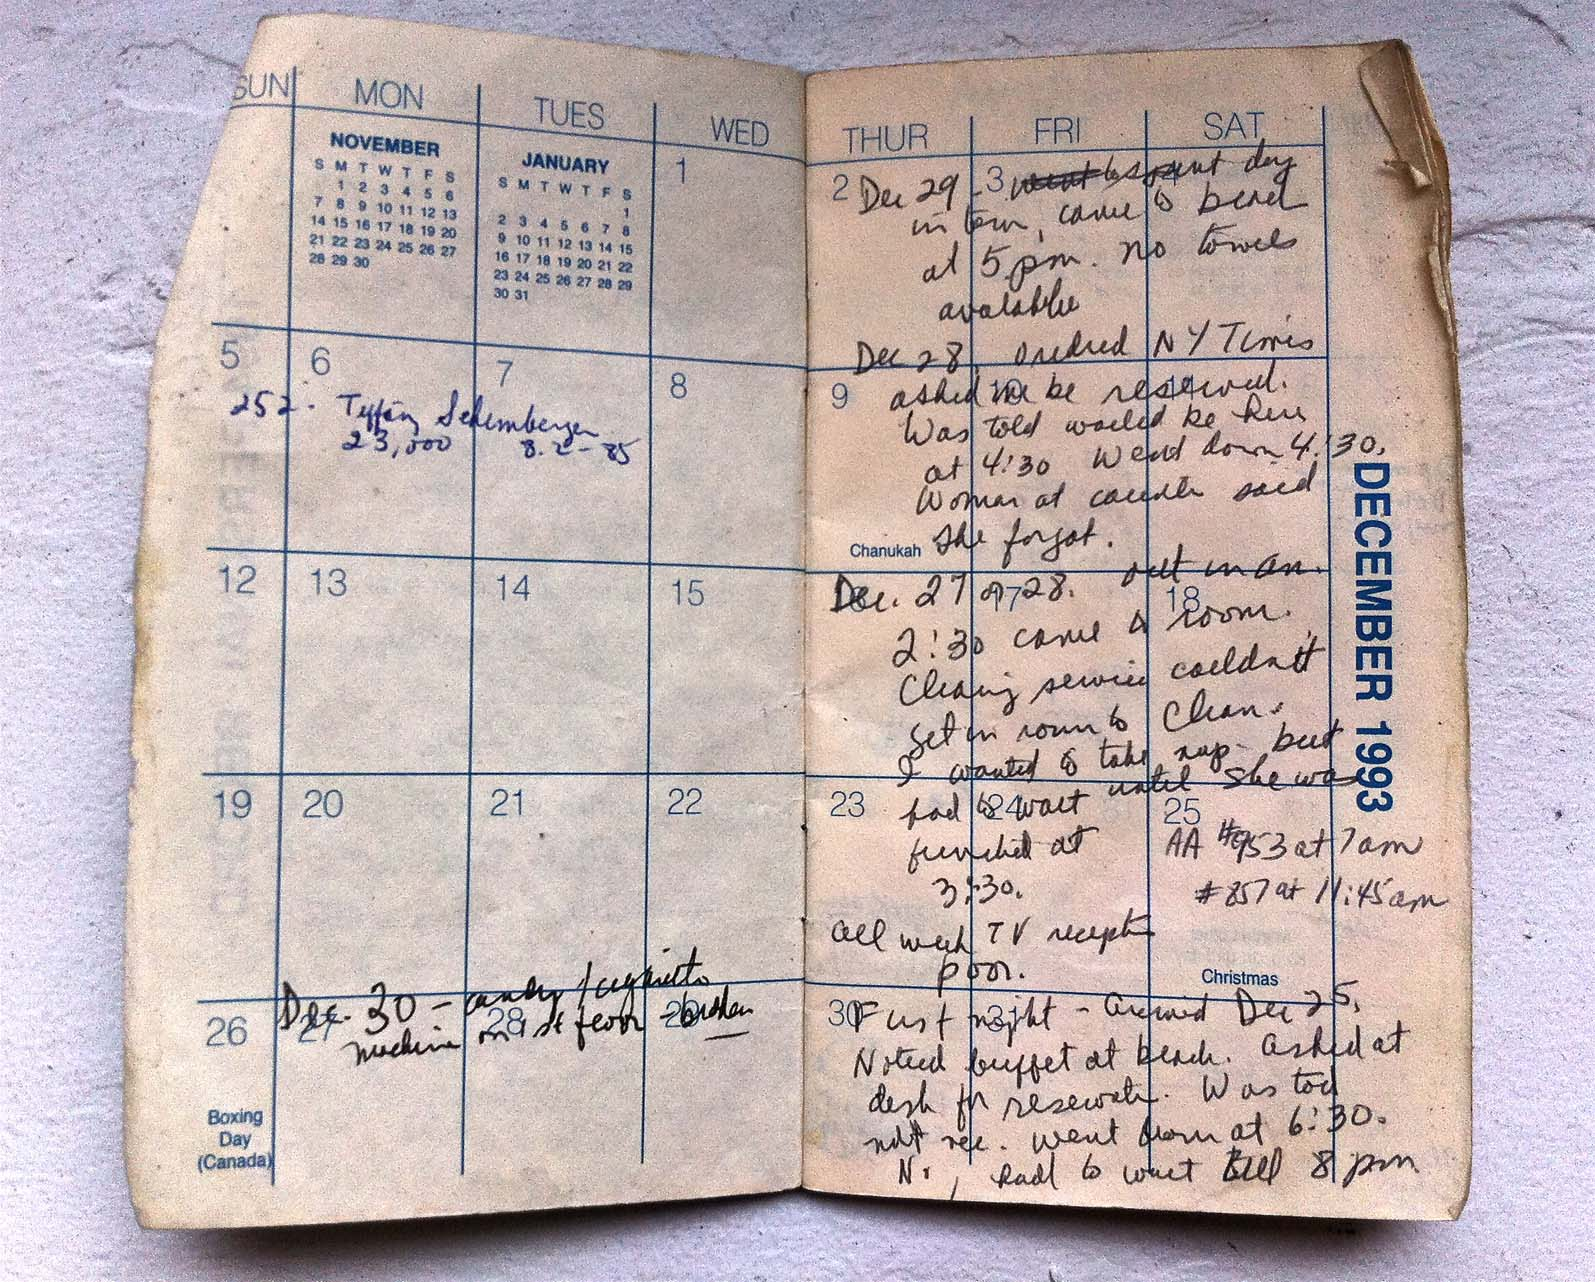 This datebook is a found object that inspired the play. The text on the right page became lyrics for a song with music by Rick Burkhardt, below.